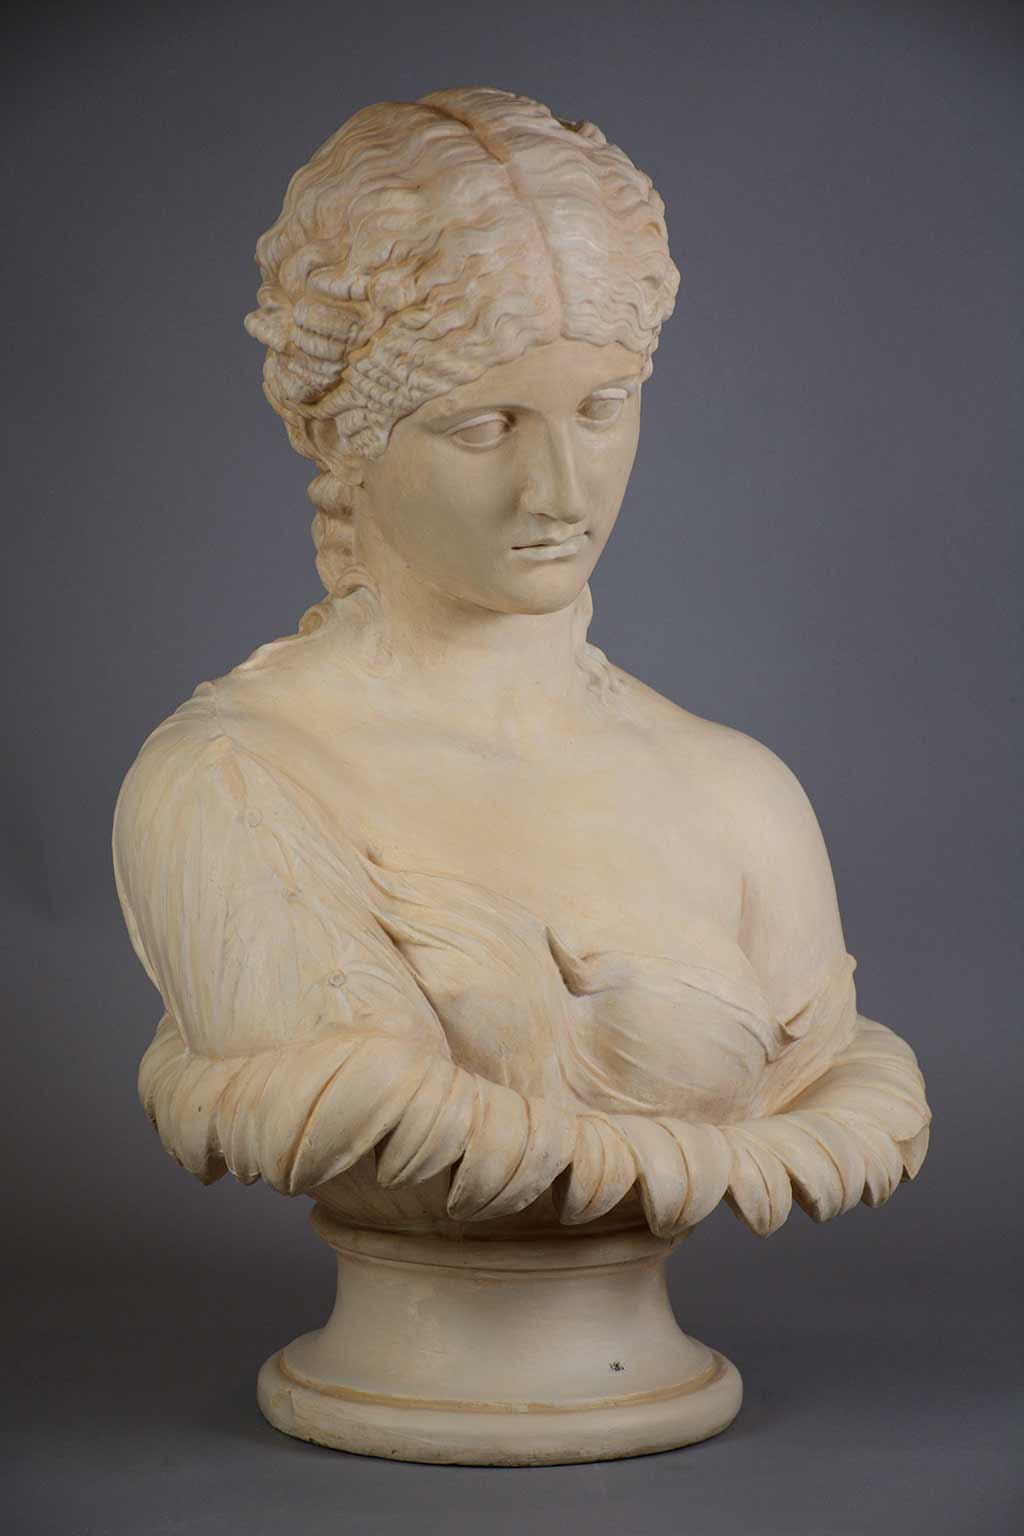 plaster cast of a woman